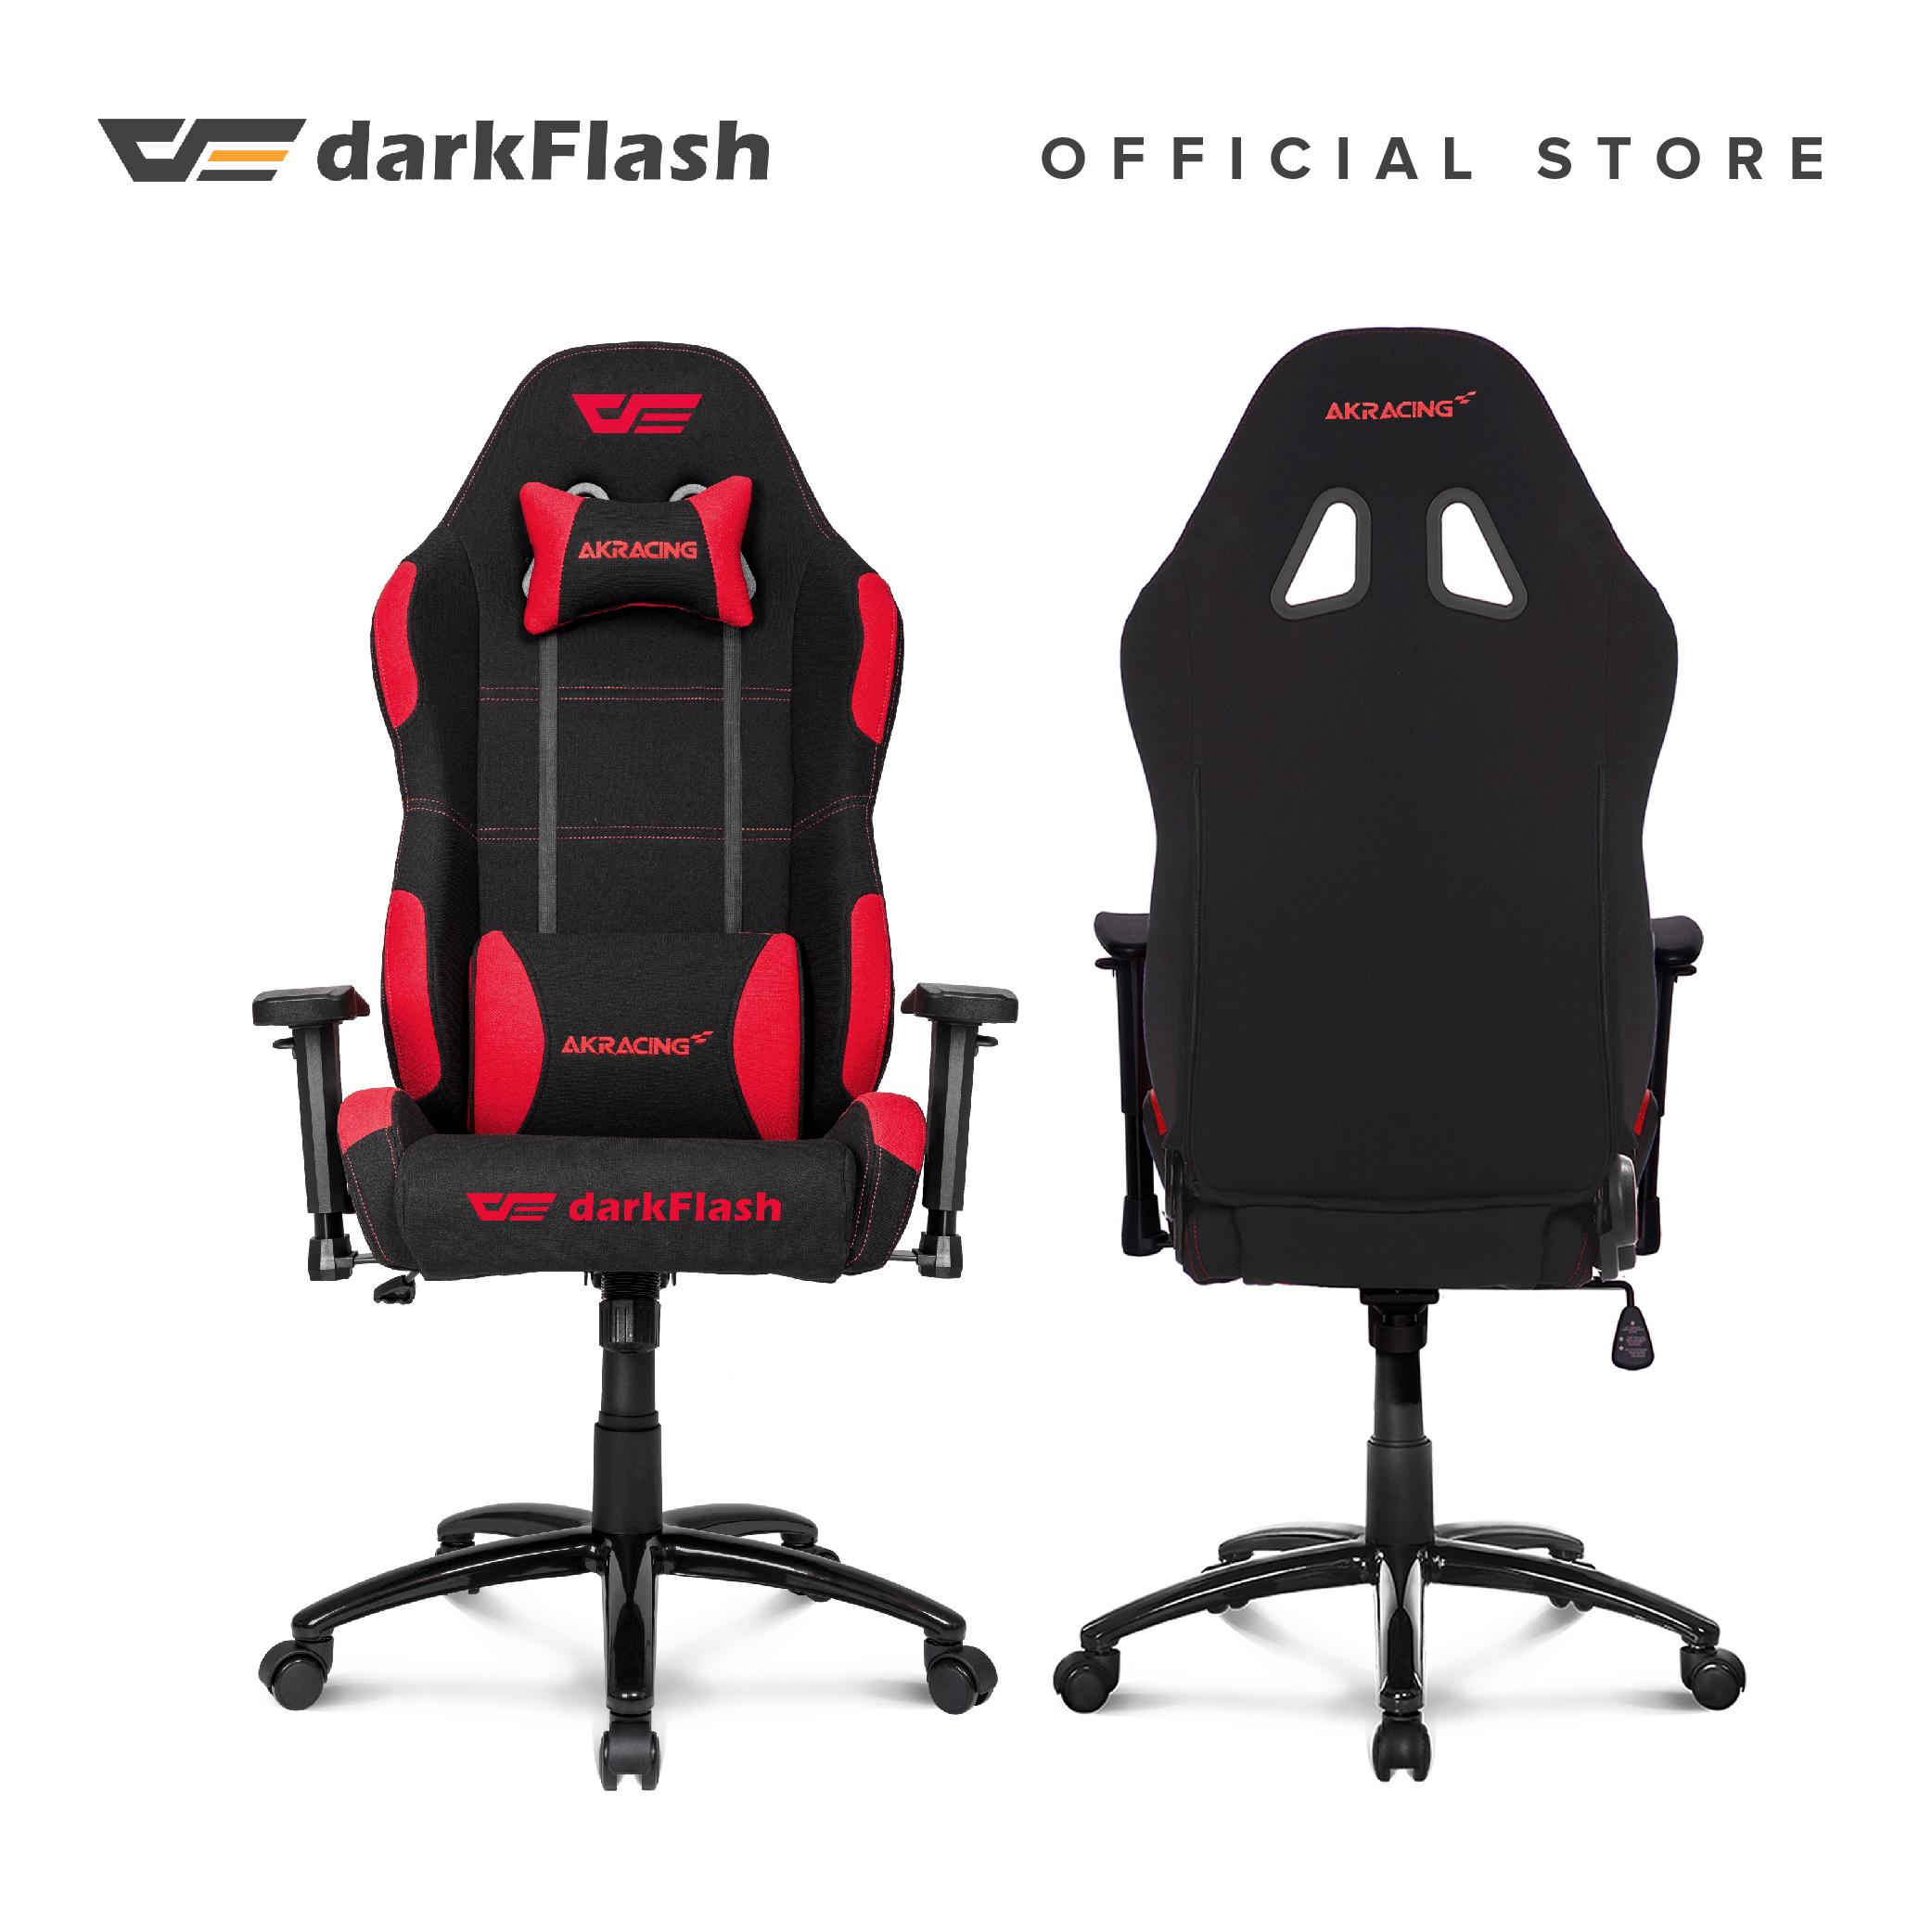 darkFlash & AKRacing co-branding partner ship DF-7012 Gaming Chair